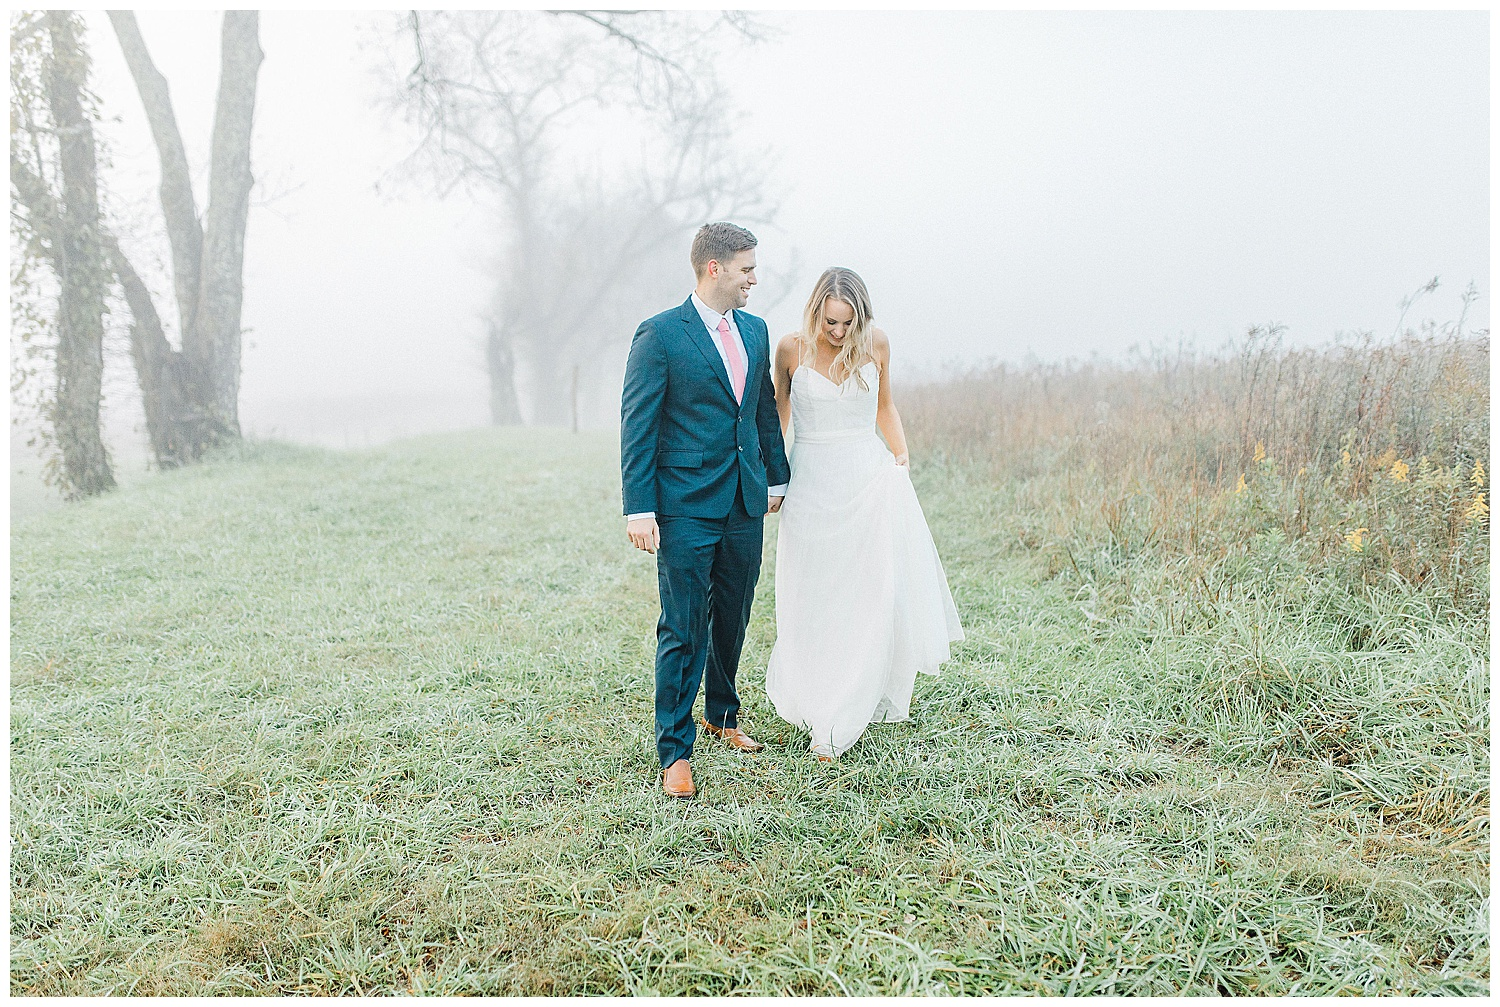 Emma Rose Company recently got to travel all the way to Nashville to photograph the most beautiful post-wedding bride and groom portraits in the Great Smoky Mountains with a gorgeous couple! Nashville wedding inspiration at it's finest._0013.jpg